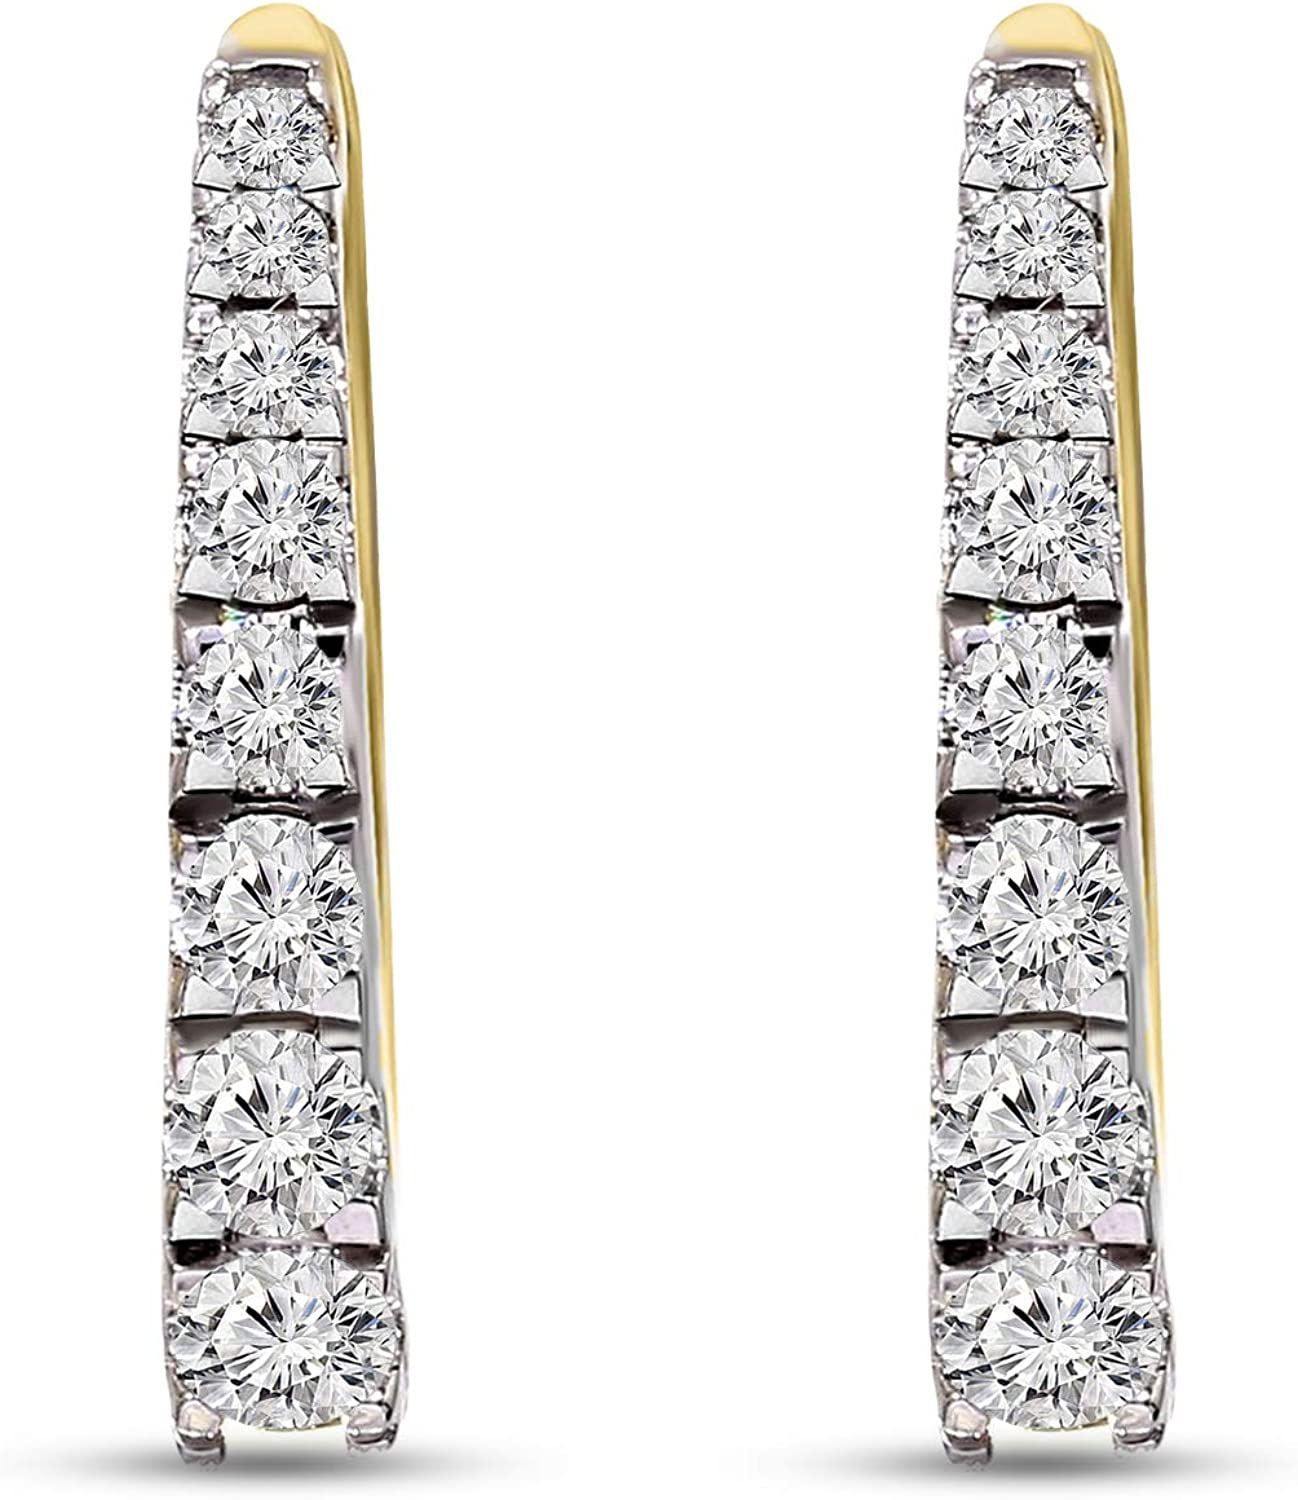 1/6 Ct to 7/8 Ct IGI Certified Diamond Hoop Earrings 10KT & 14KT White & Yellow Gold Natural Diamond Earrings For Women I1-GH Quality Diamond Hoop Earrings (Jewelry Gift For Women)